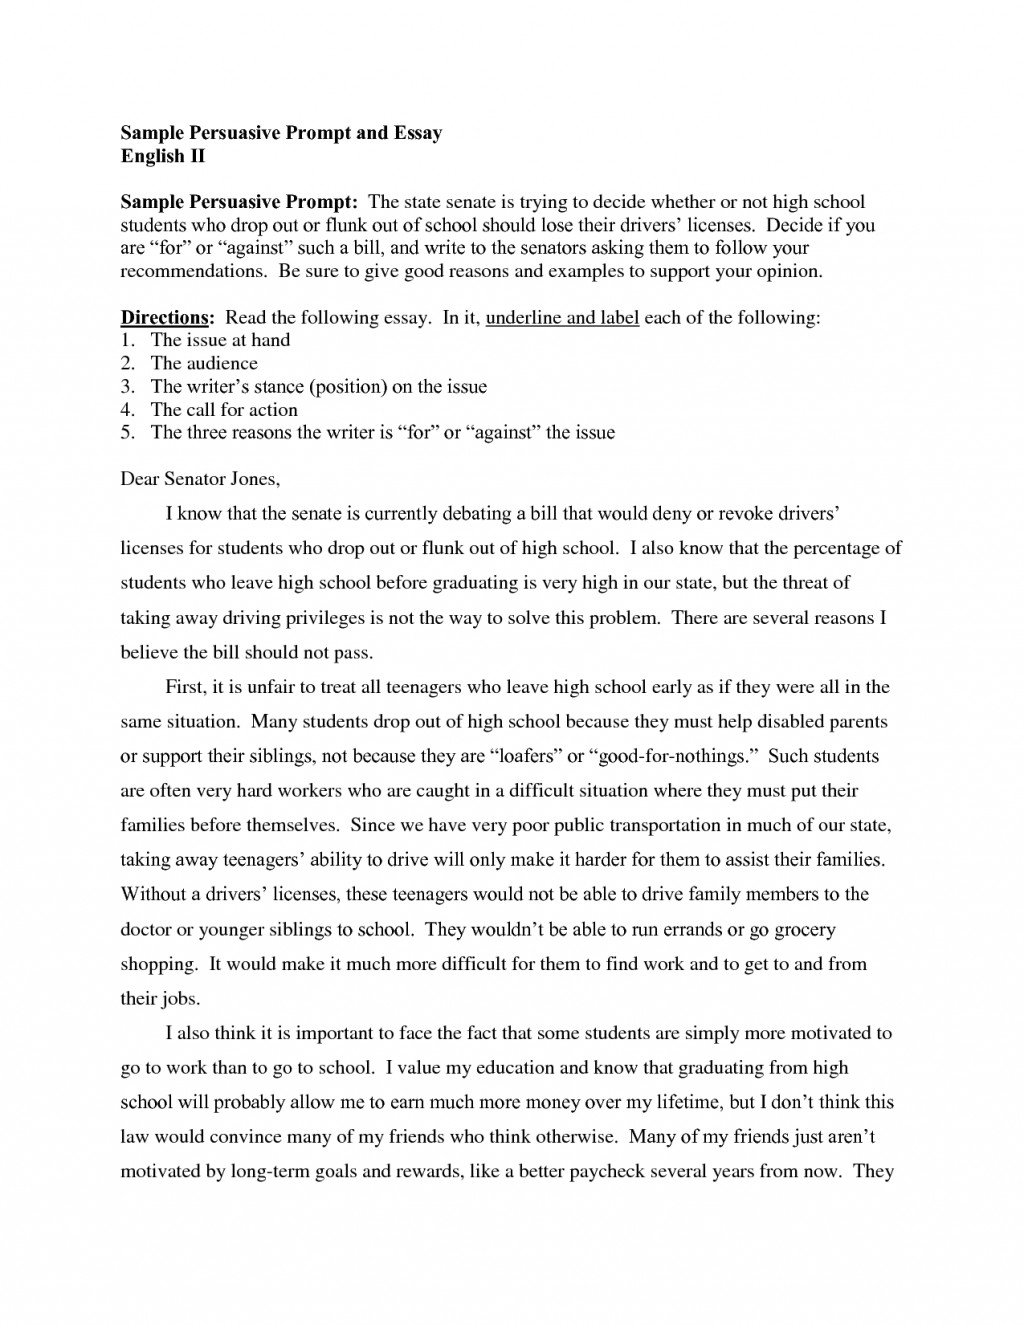 006 Persuasive Essay Topics For High School Sample Ideas Highschool Students Good Prompt Funny Easy Fun List Of Seniors Writing English Free How To Write Research Paper Stirring A Pdf Large